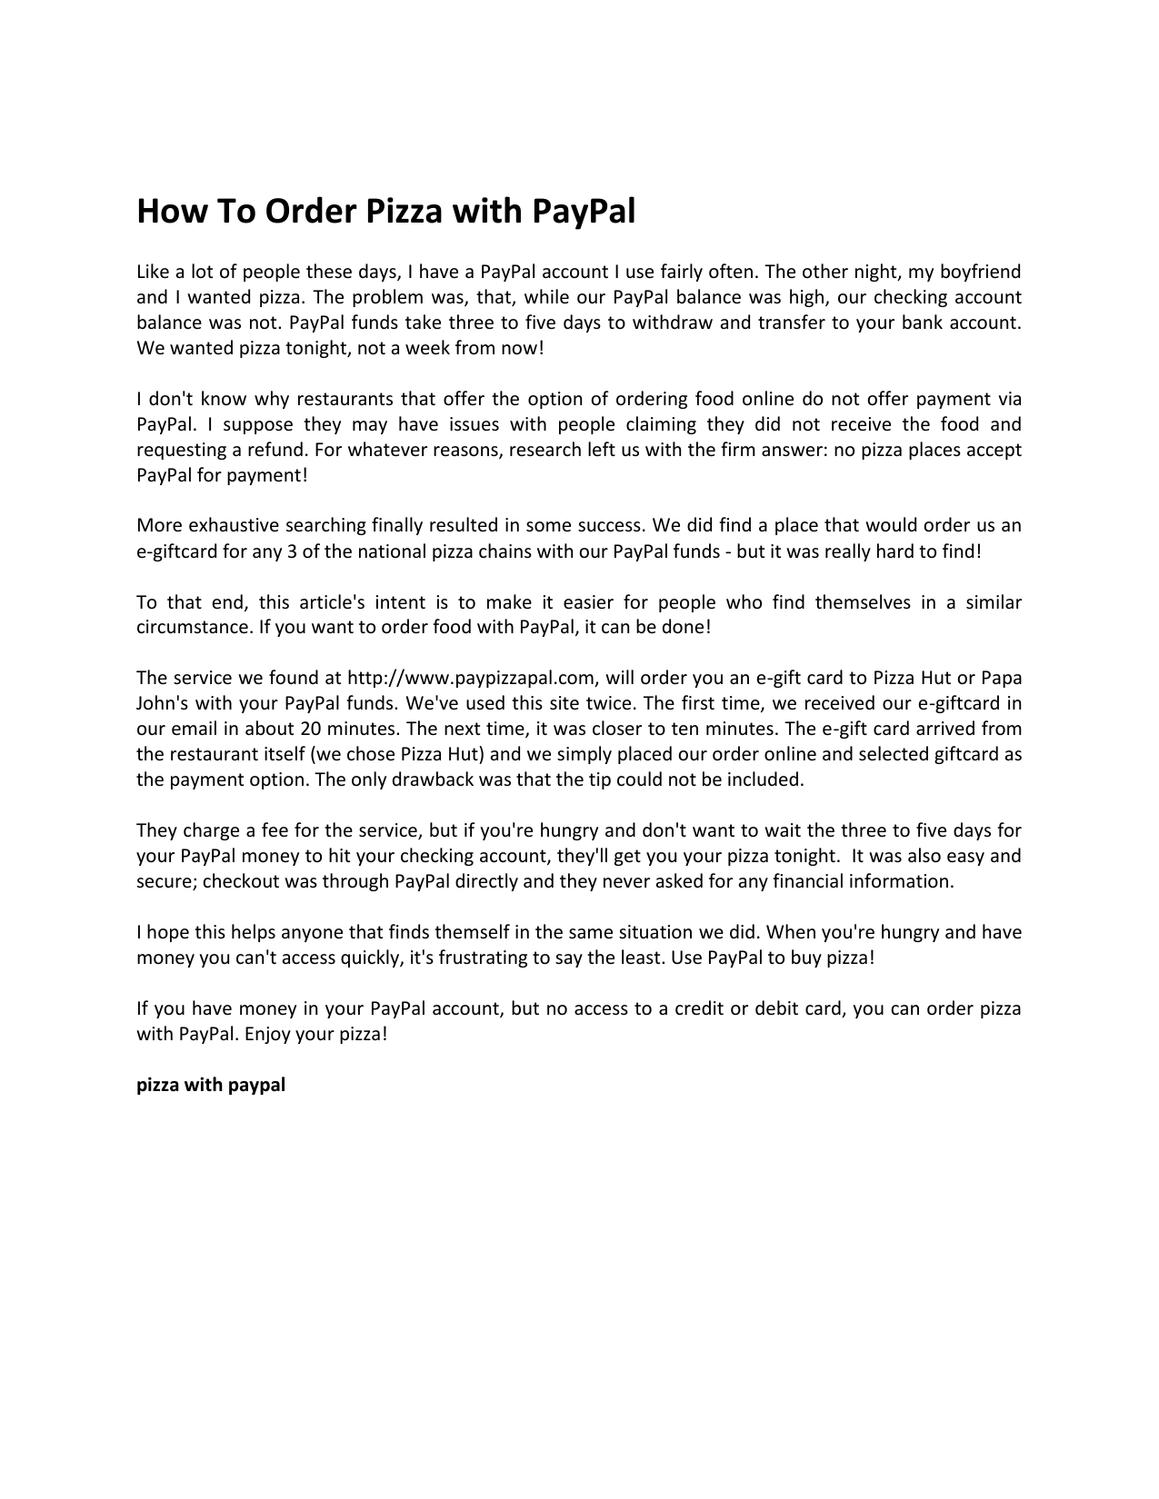 Does Pizza Hut Accept Paypal